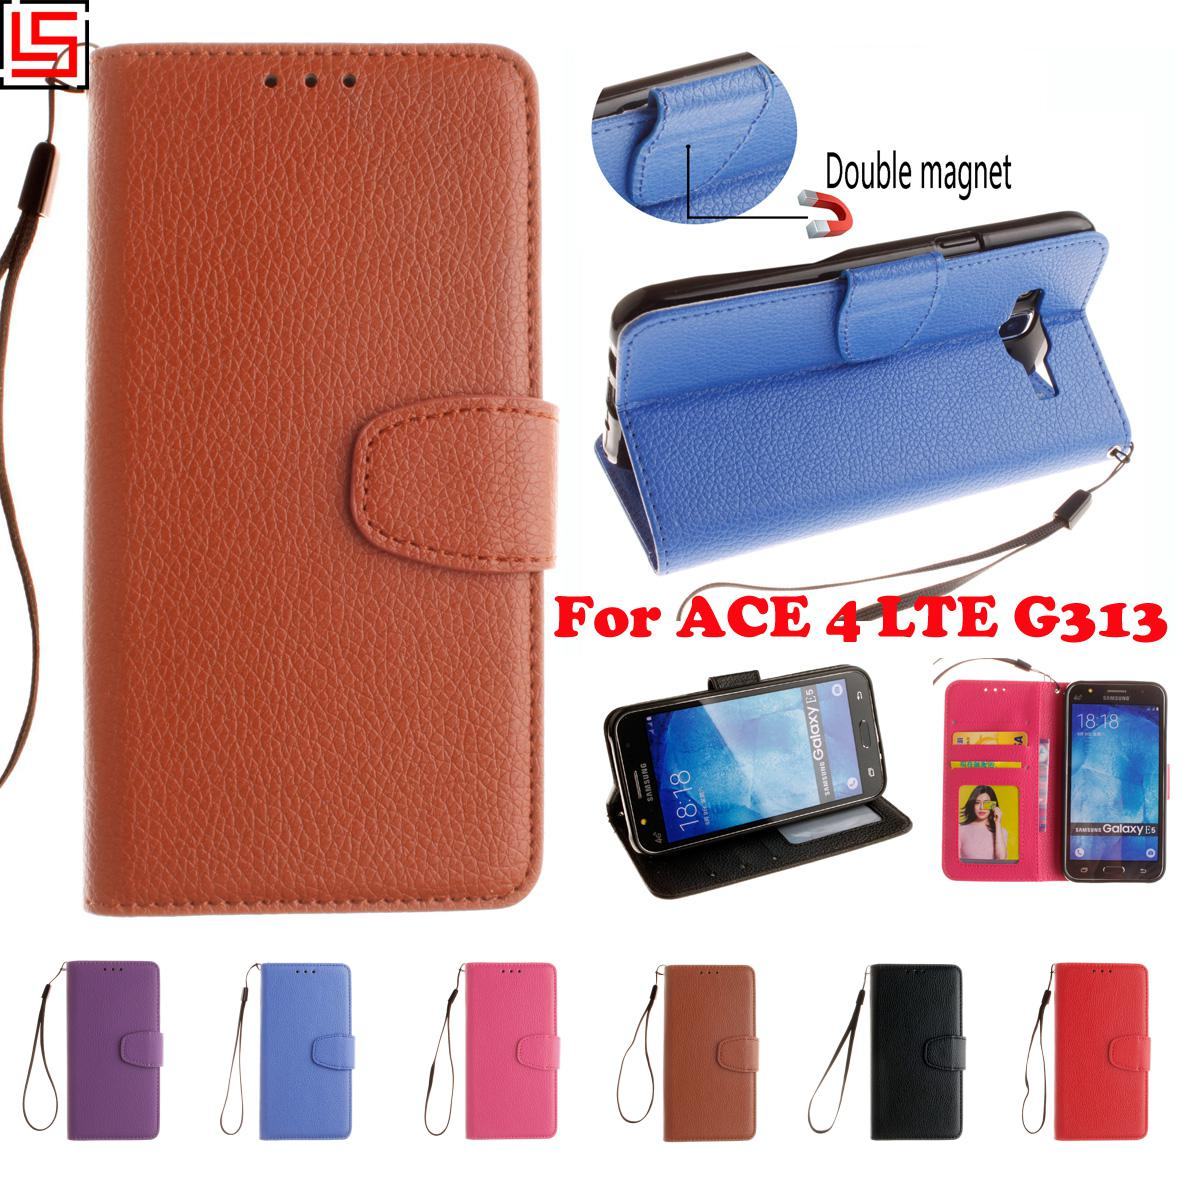 c873fb990b9a Luxury Best New PU Leather Flip Wallet Phone Case cubierta caso fundas  Cover Bag For Samsung Galaxy ACE 4 ACE4 LTE G 313 Red